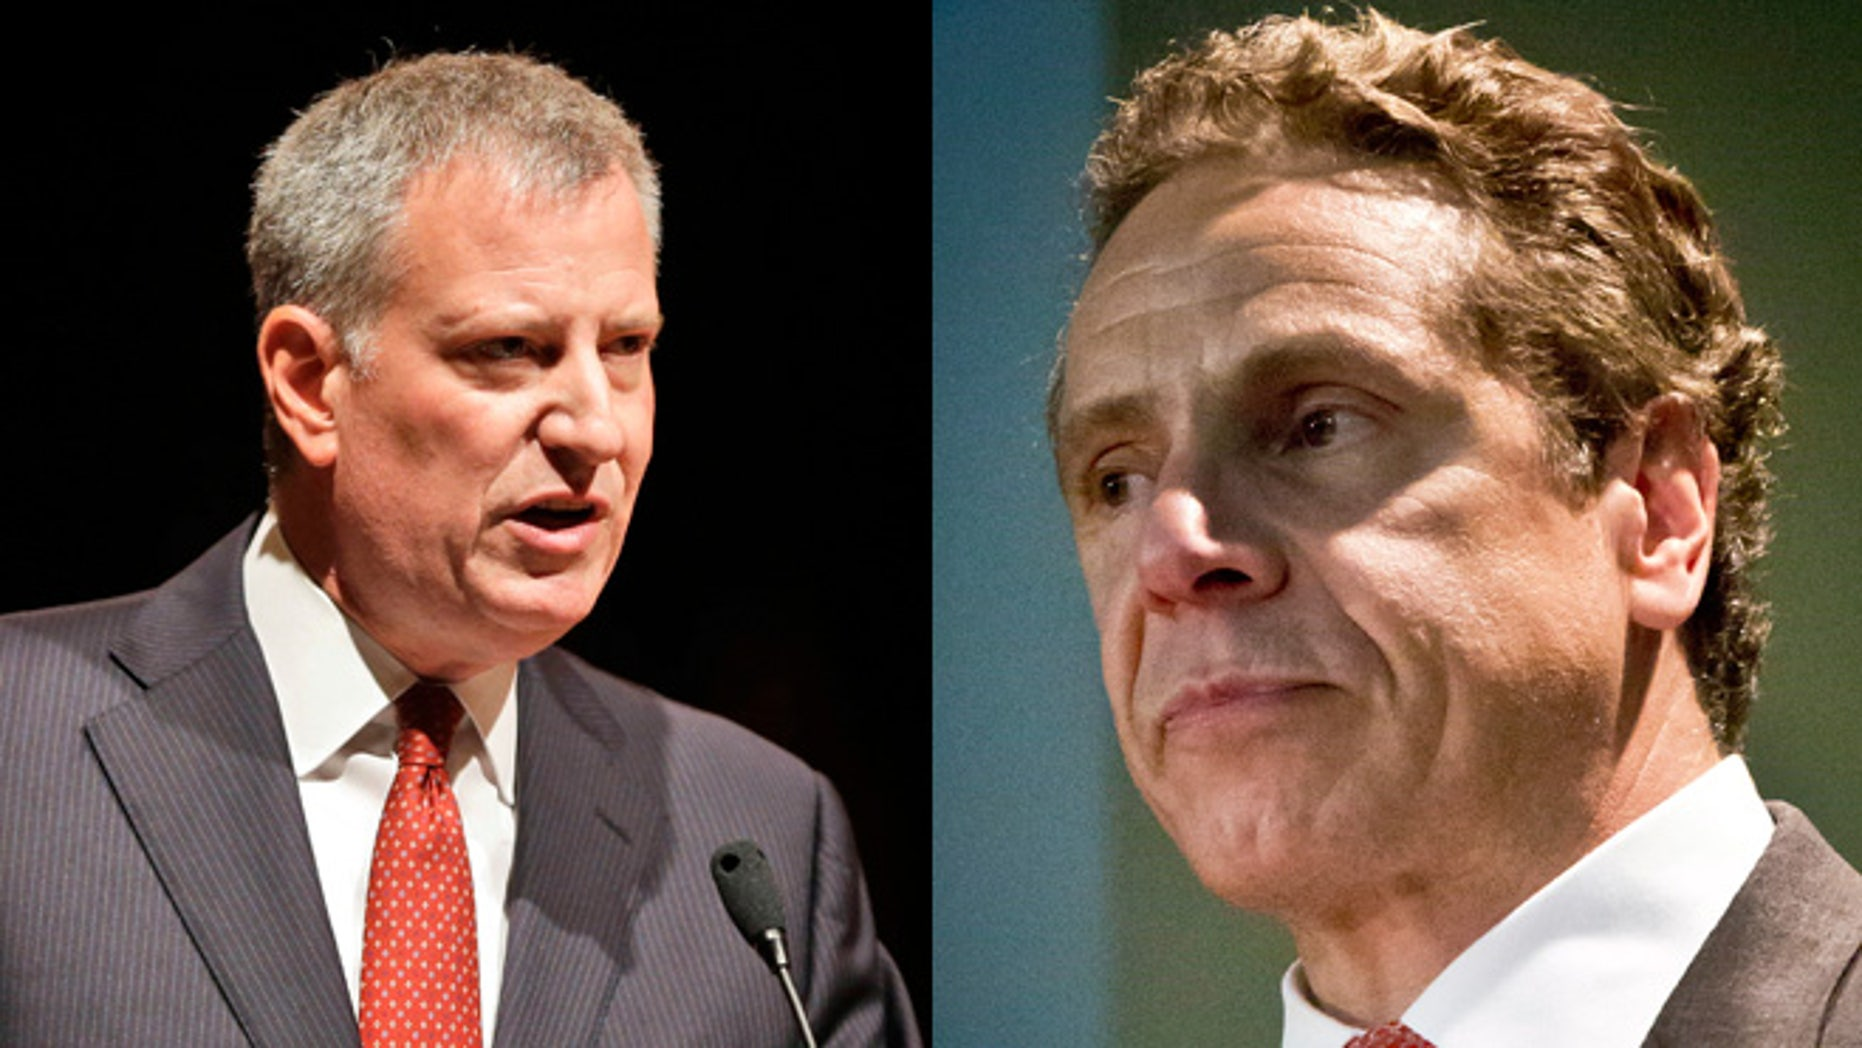 New York Mayor Bill de Blasio (left) and New York Gov. Andrew Cuomo (right).